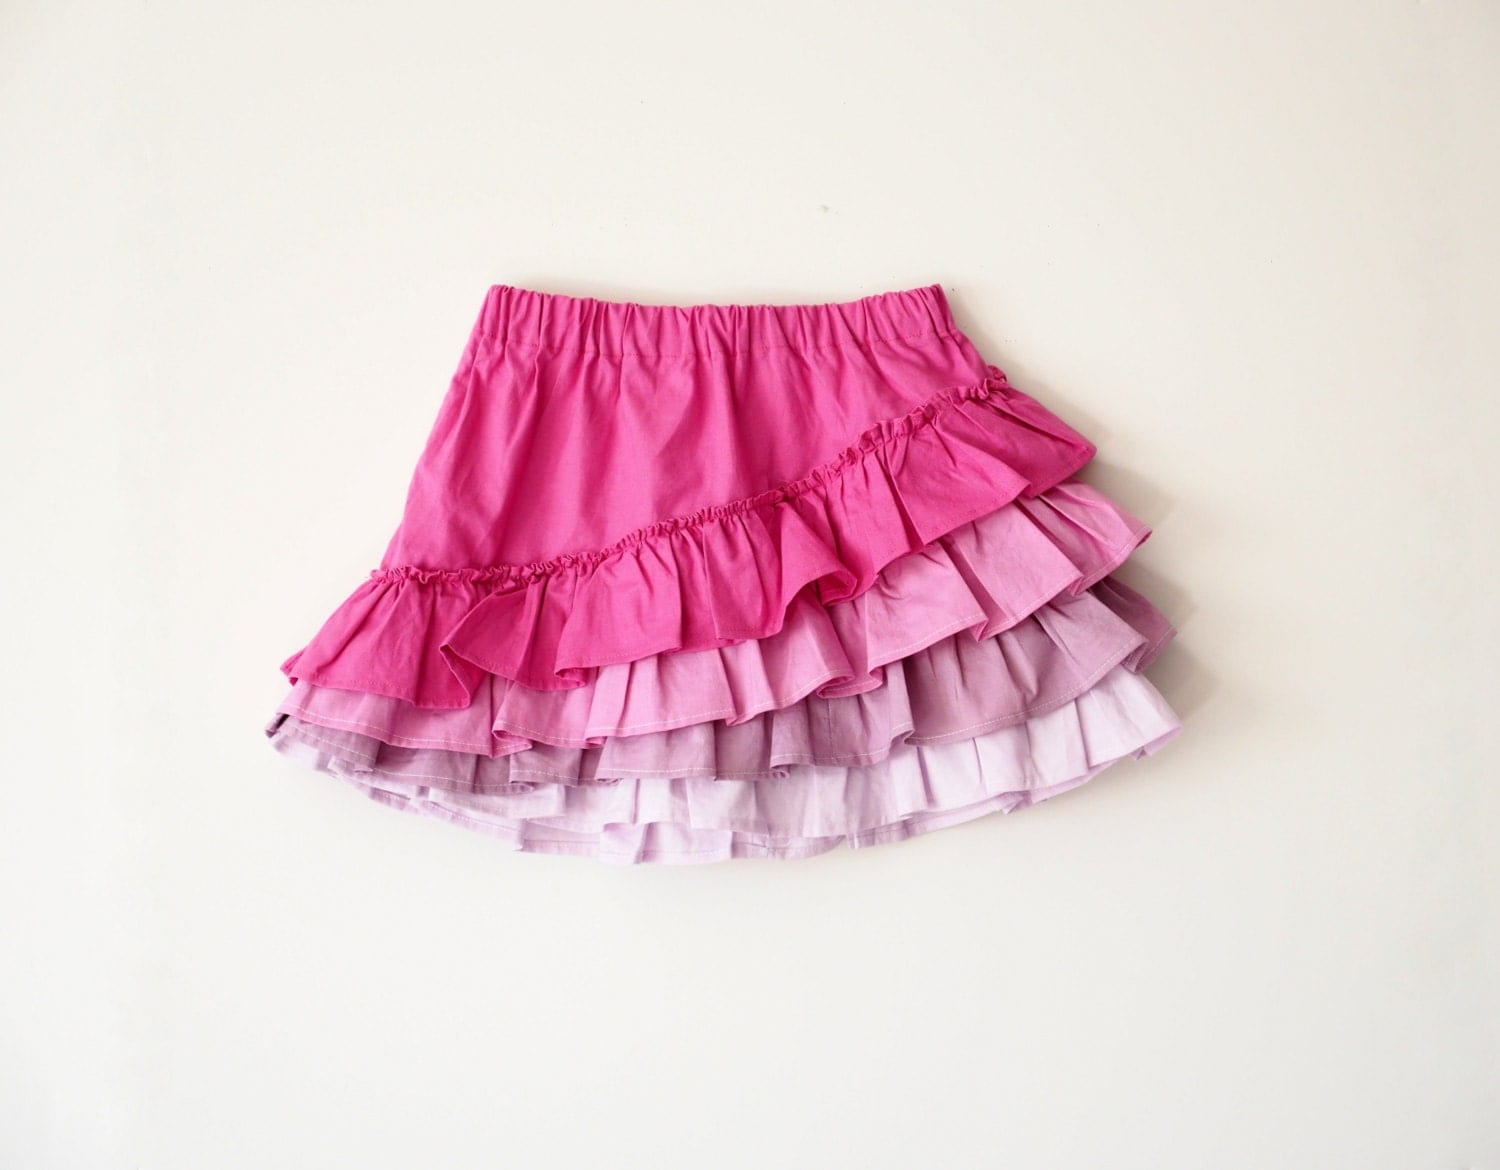 Skirt Designs For Girls | www.pixshark.com - Images ... Ruffle Designs